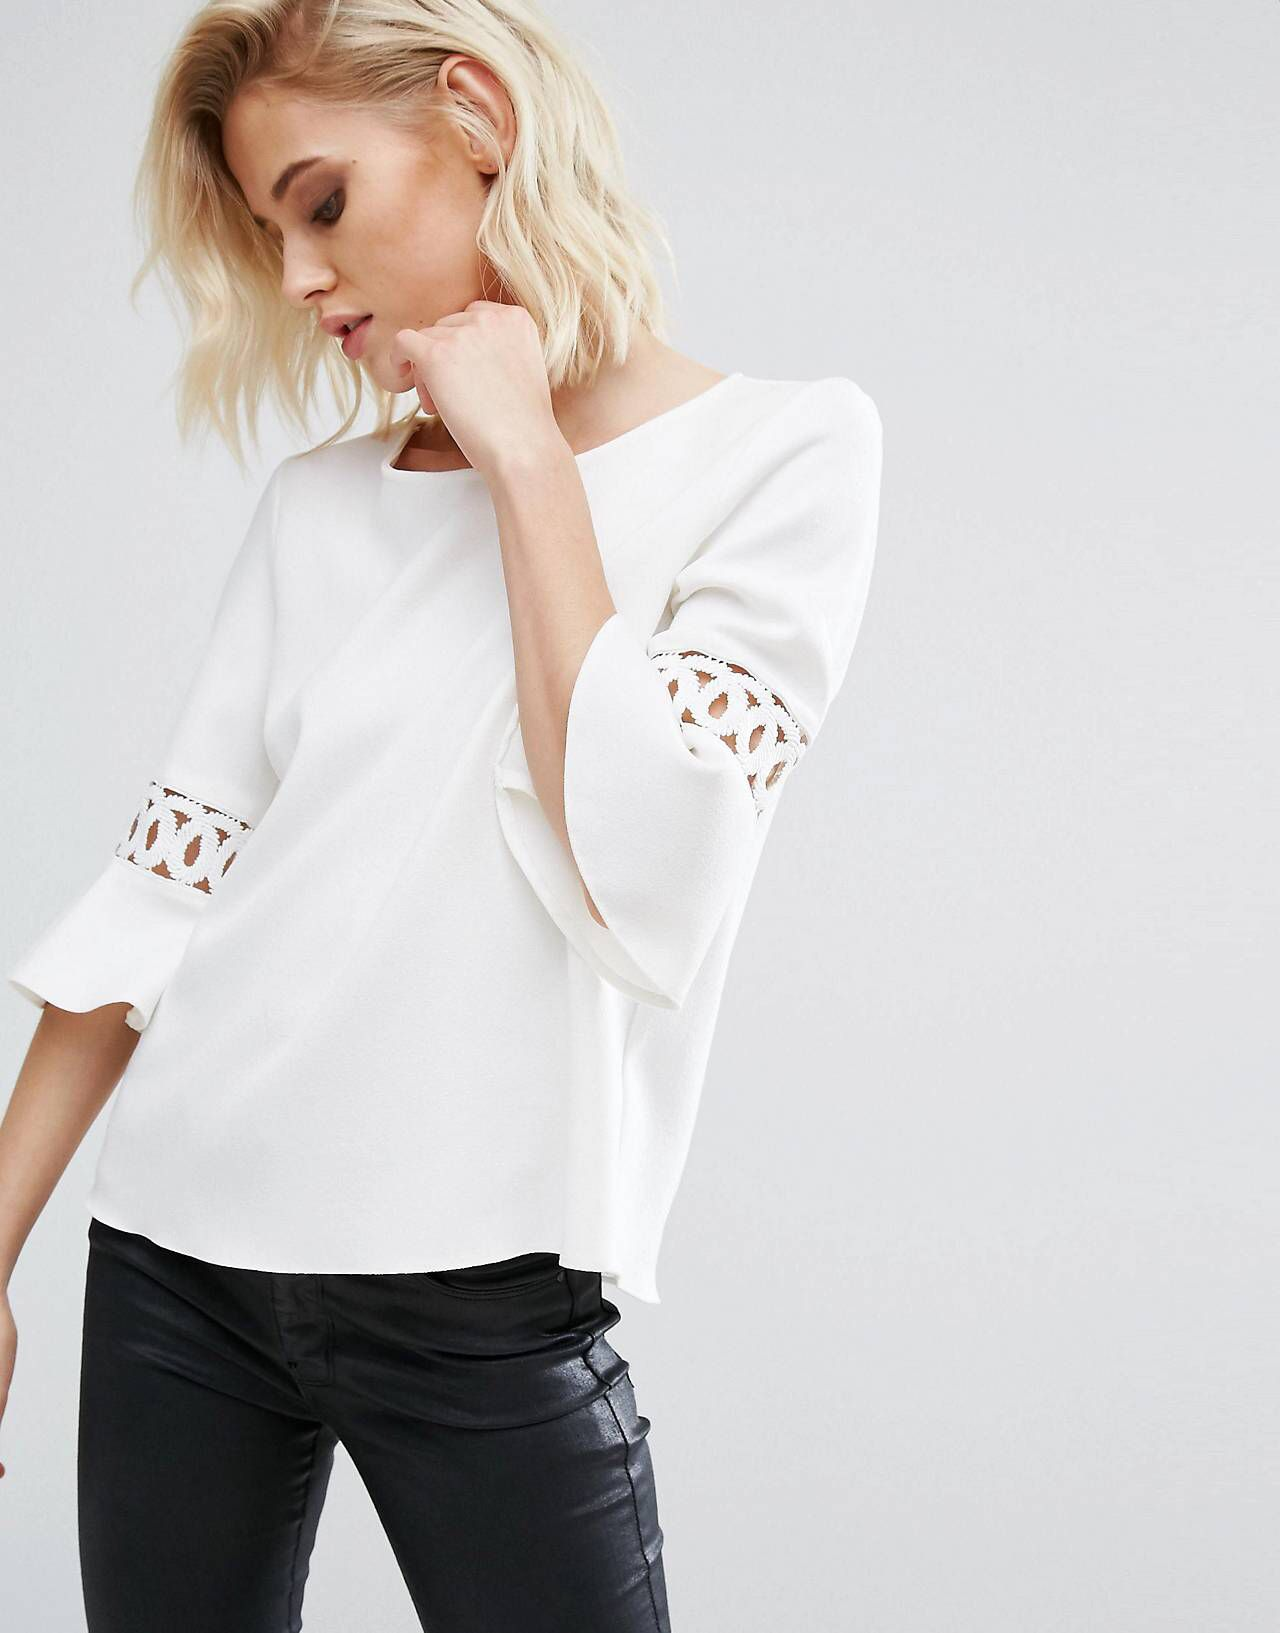 f5fb7c45e1 River Island Fluted Sleeve Top With Lace Inserts   Cory in Italy ...